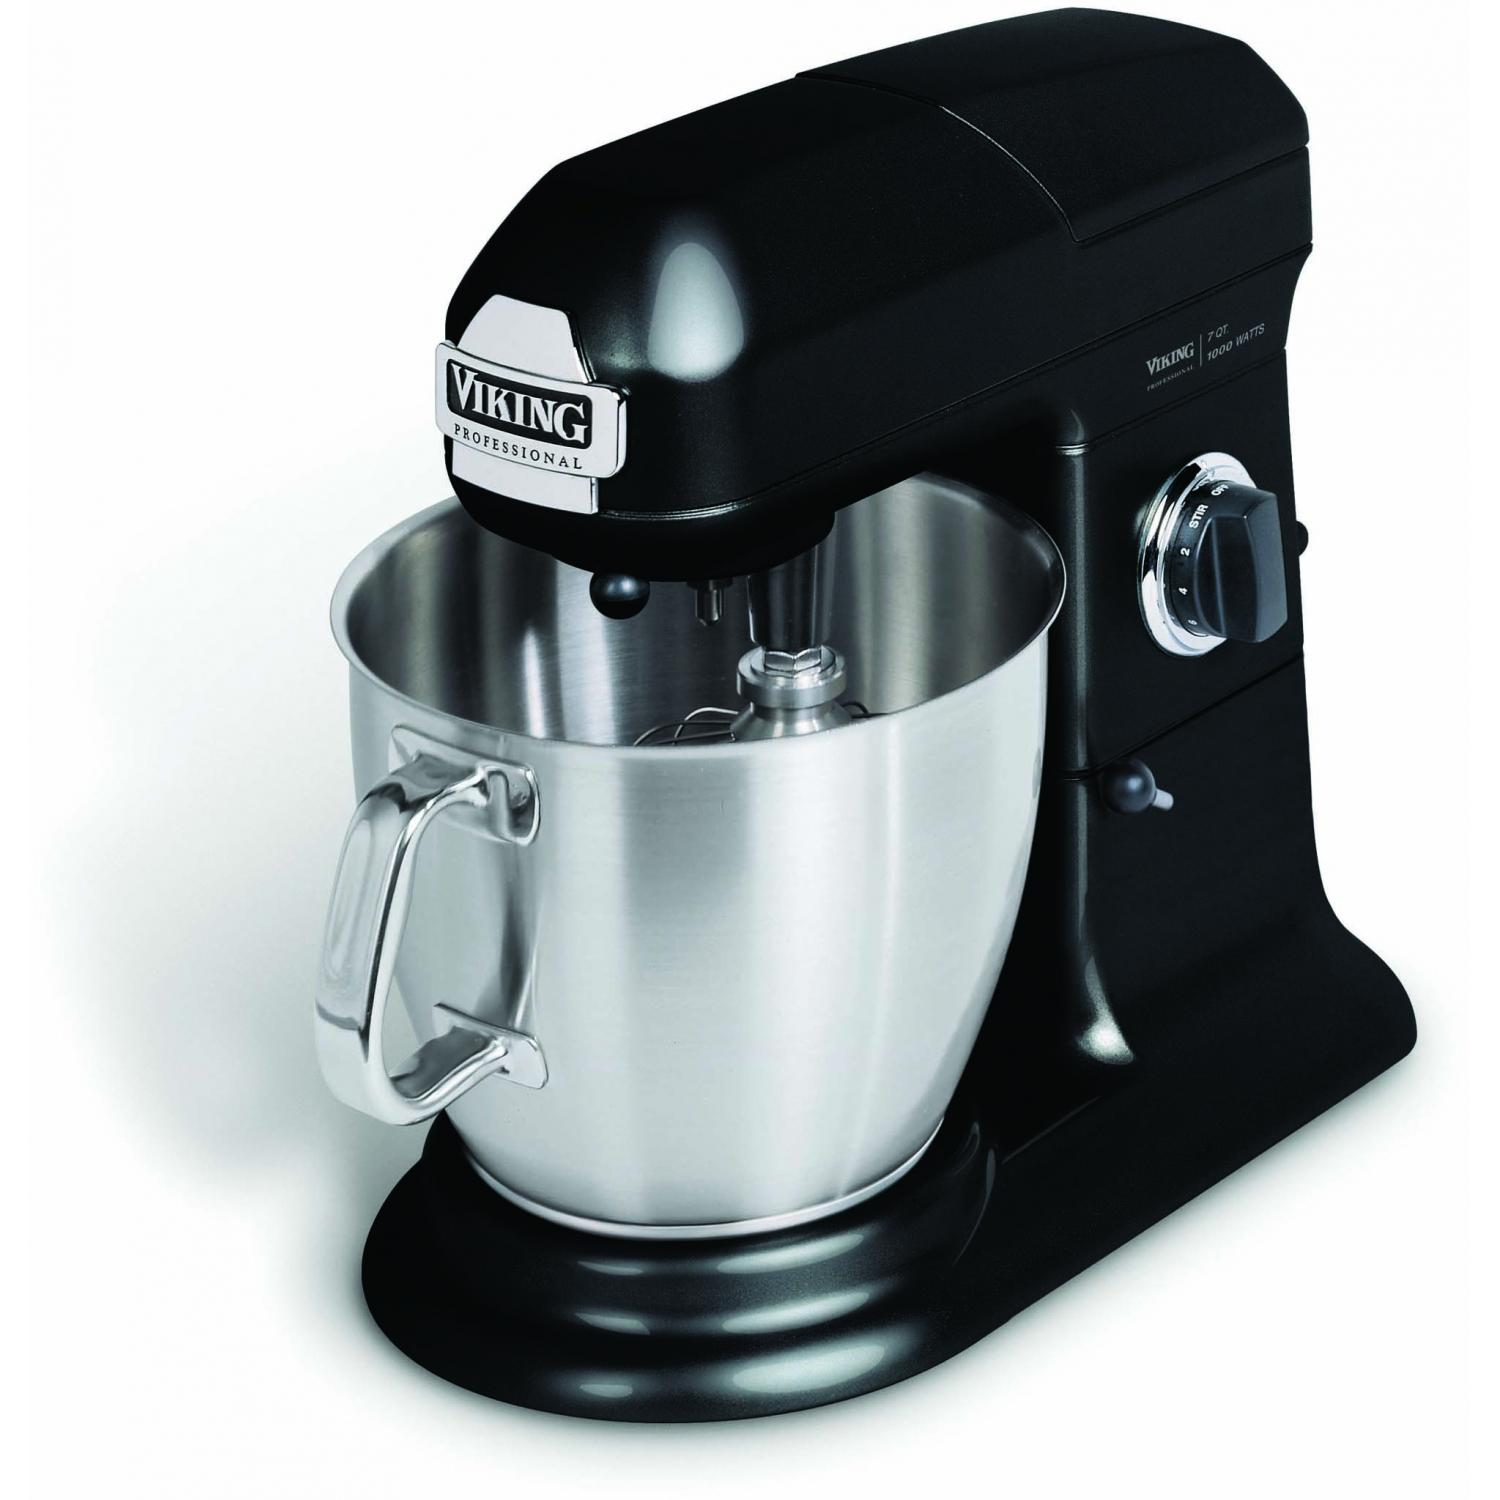 Viking VSM700BK Professional 7-Quart Stand Mixer - Black